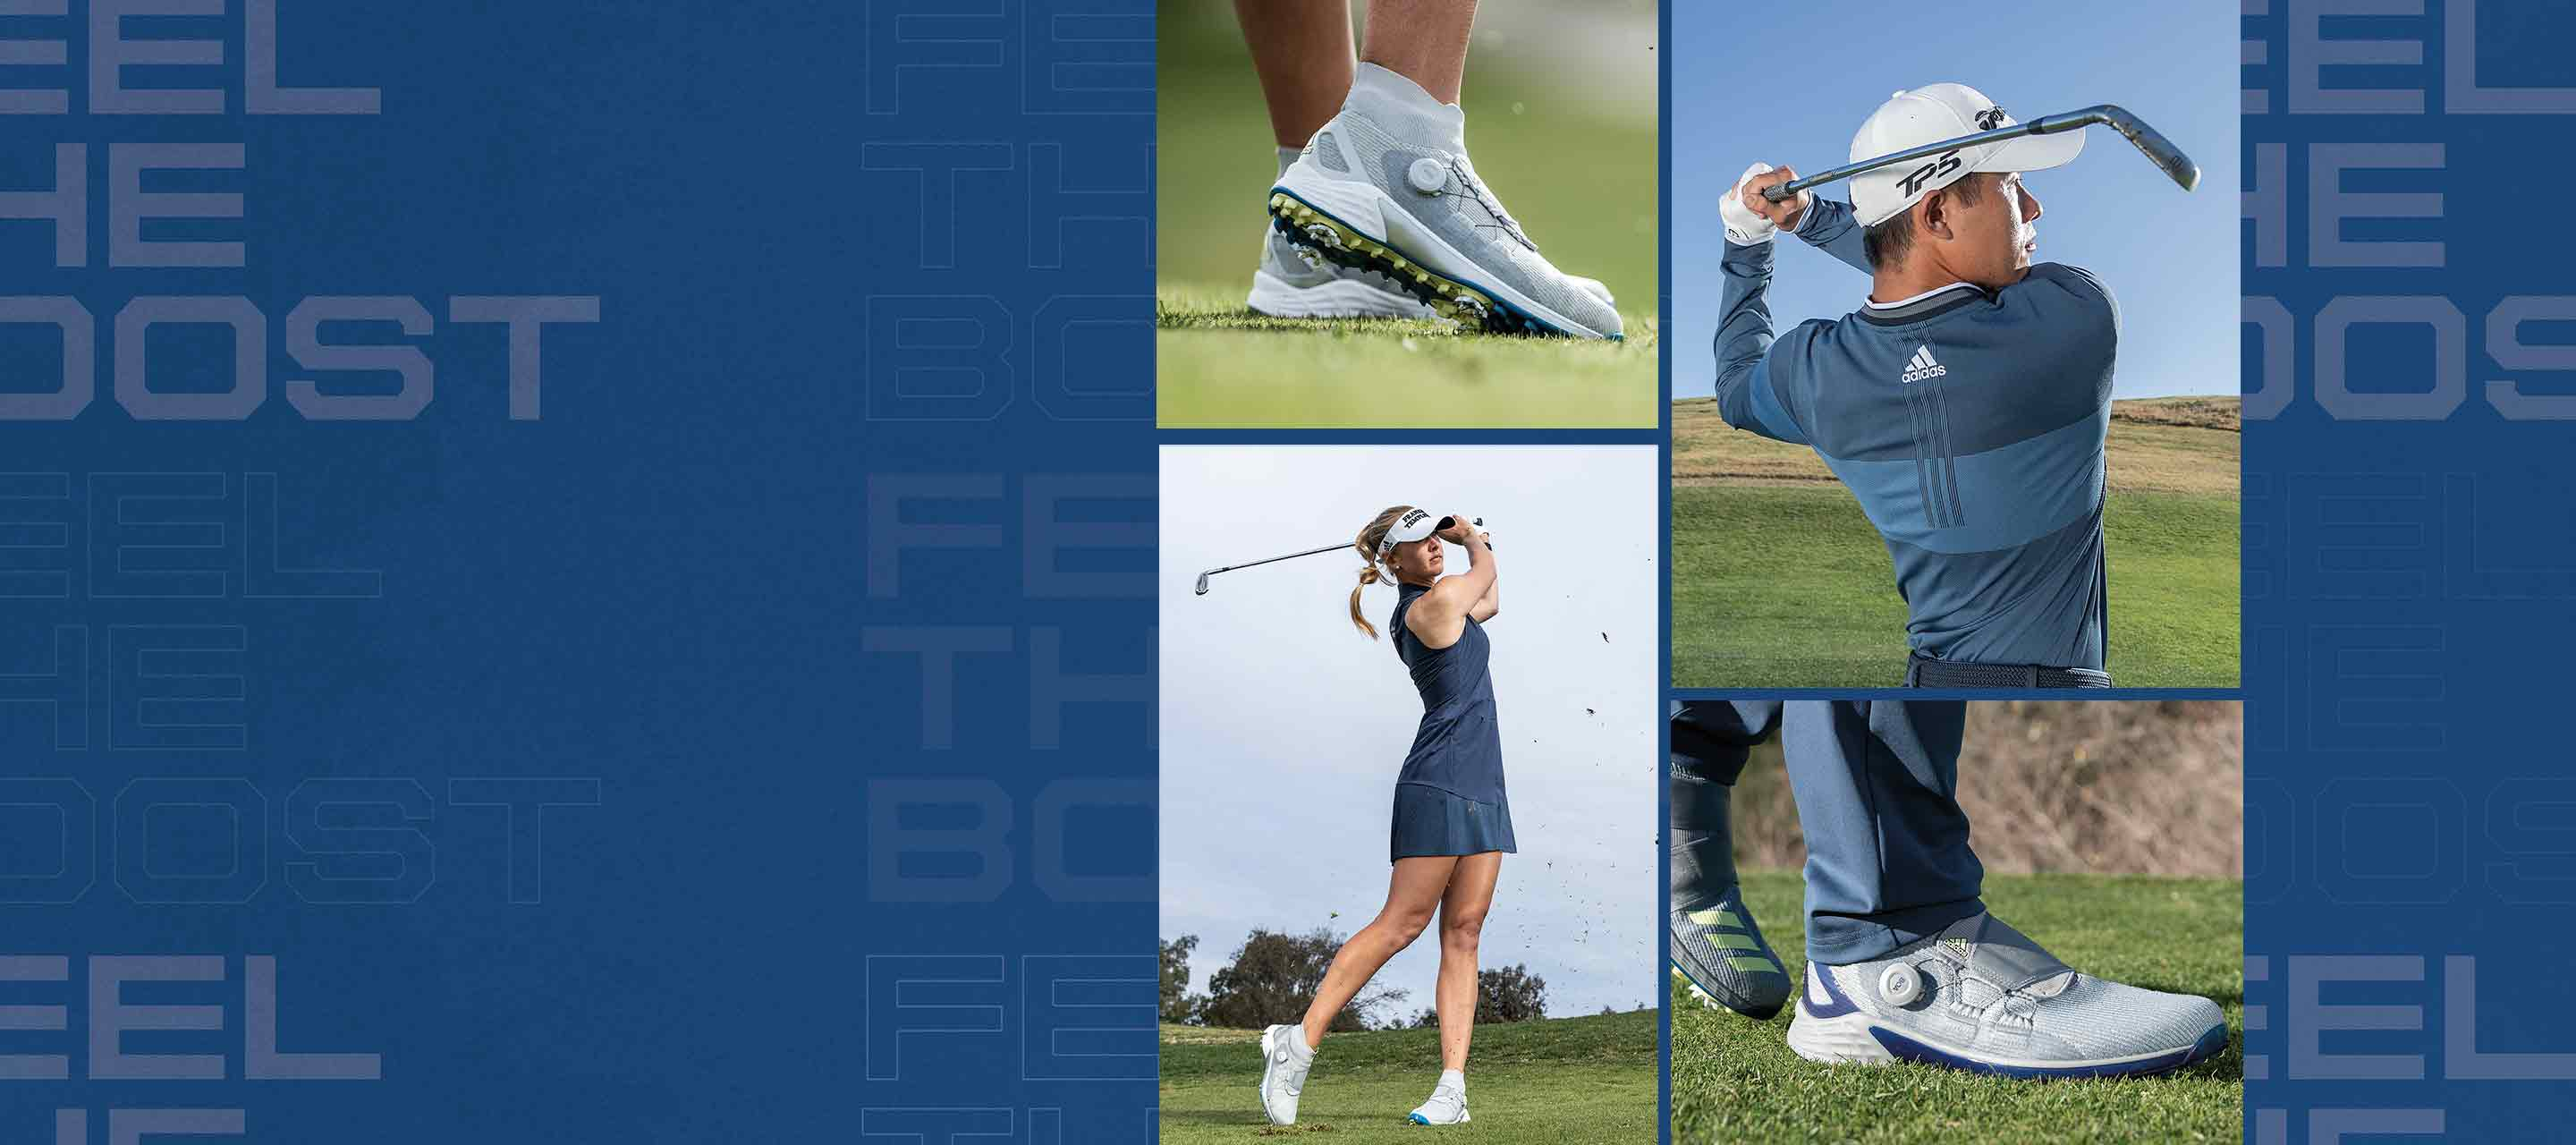 Collage of multiple imagery of men and women playing golf